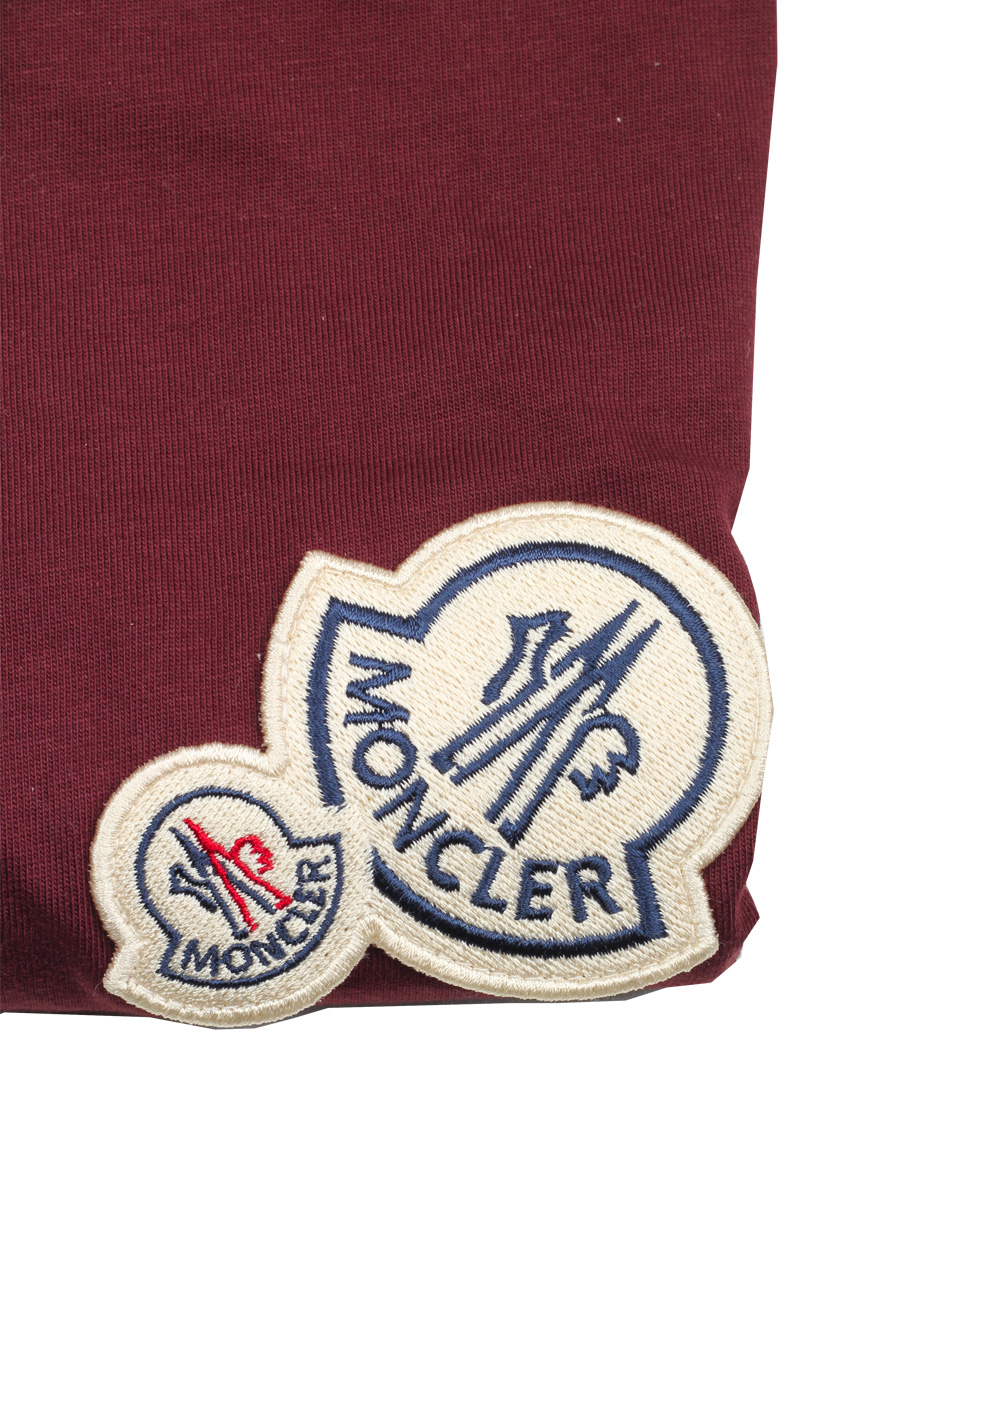 Moncler Red Brand Patch Crew Neck Tee Shirt Size M / 38R U.S. | Costume Limité